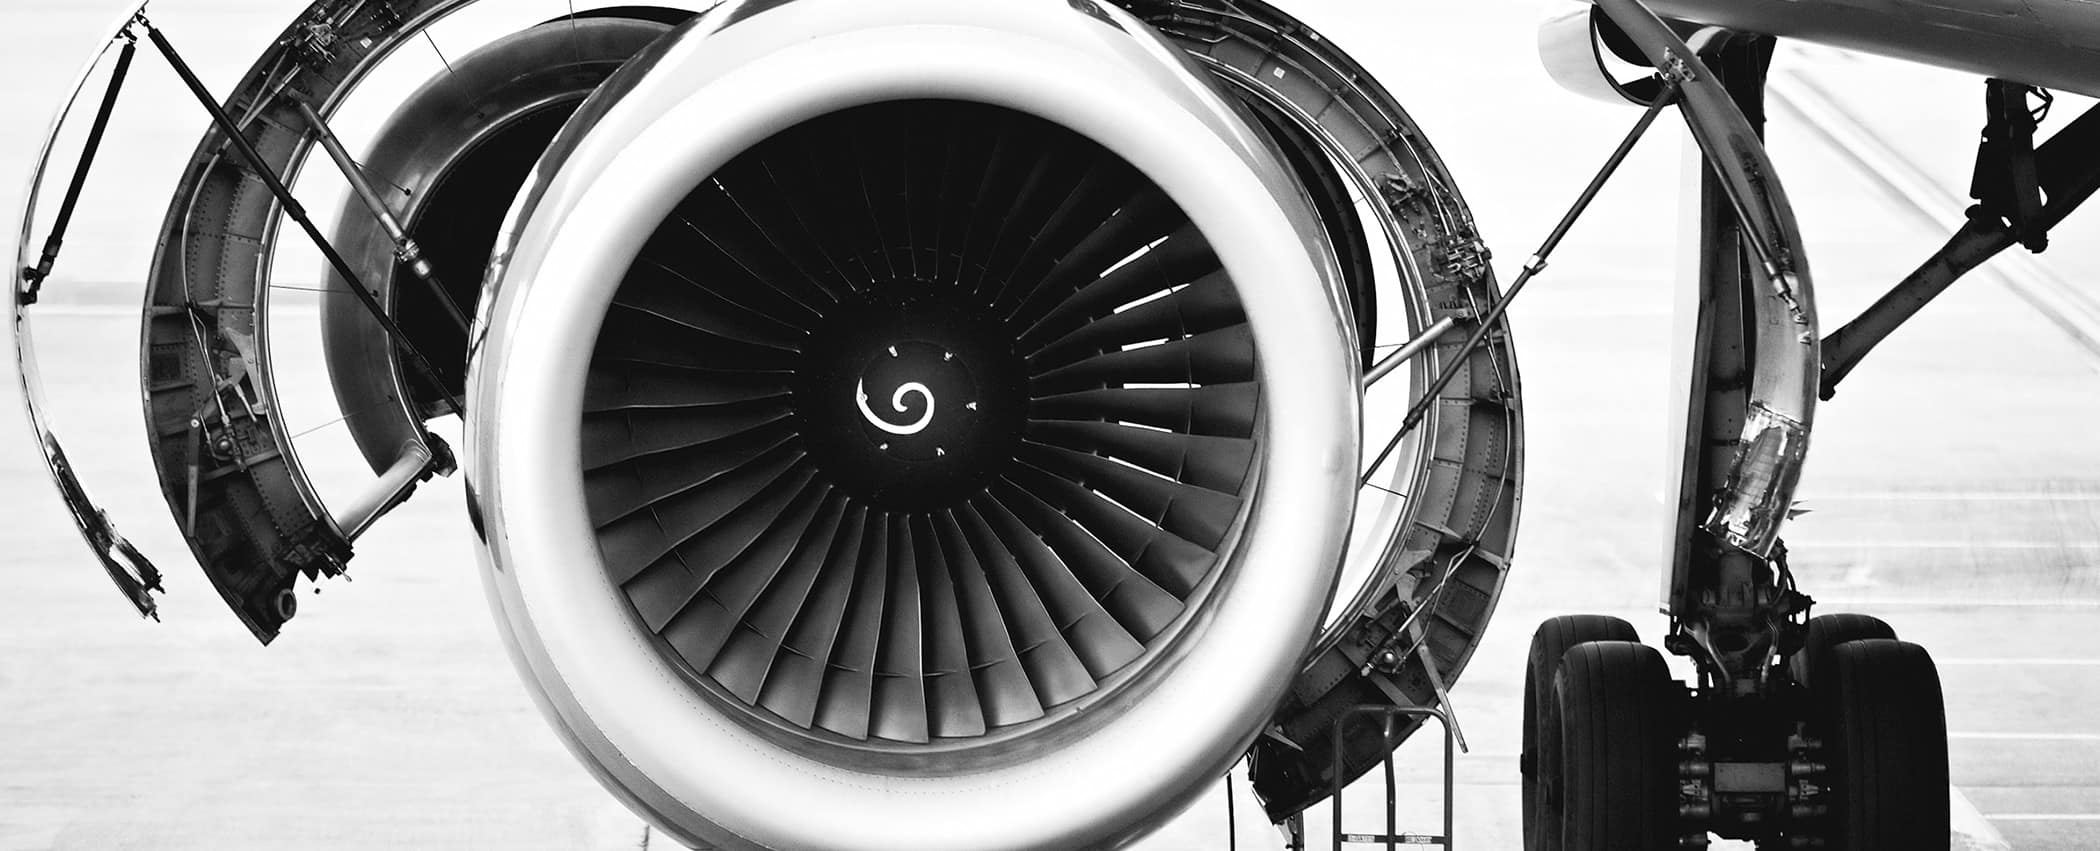 thesis on aircraft maintenance Types of maintenance prepared by rathod abhik (13mmf0001)  case study aircraft maintenance aircraft maintenance is the overhaul, repair,.